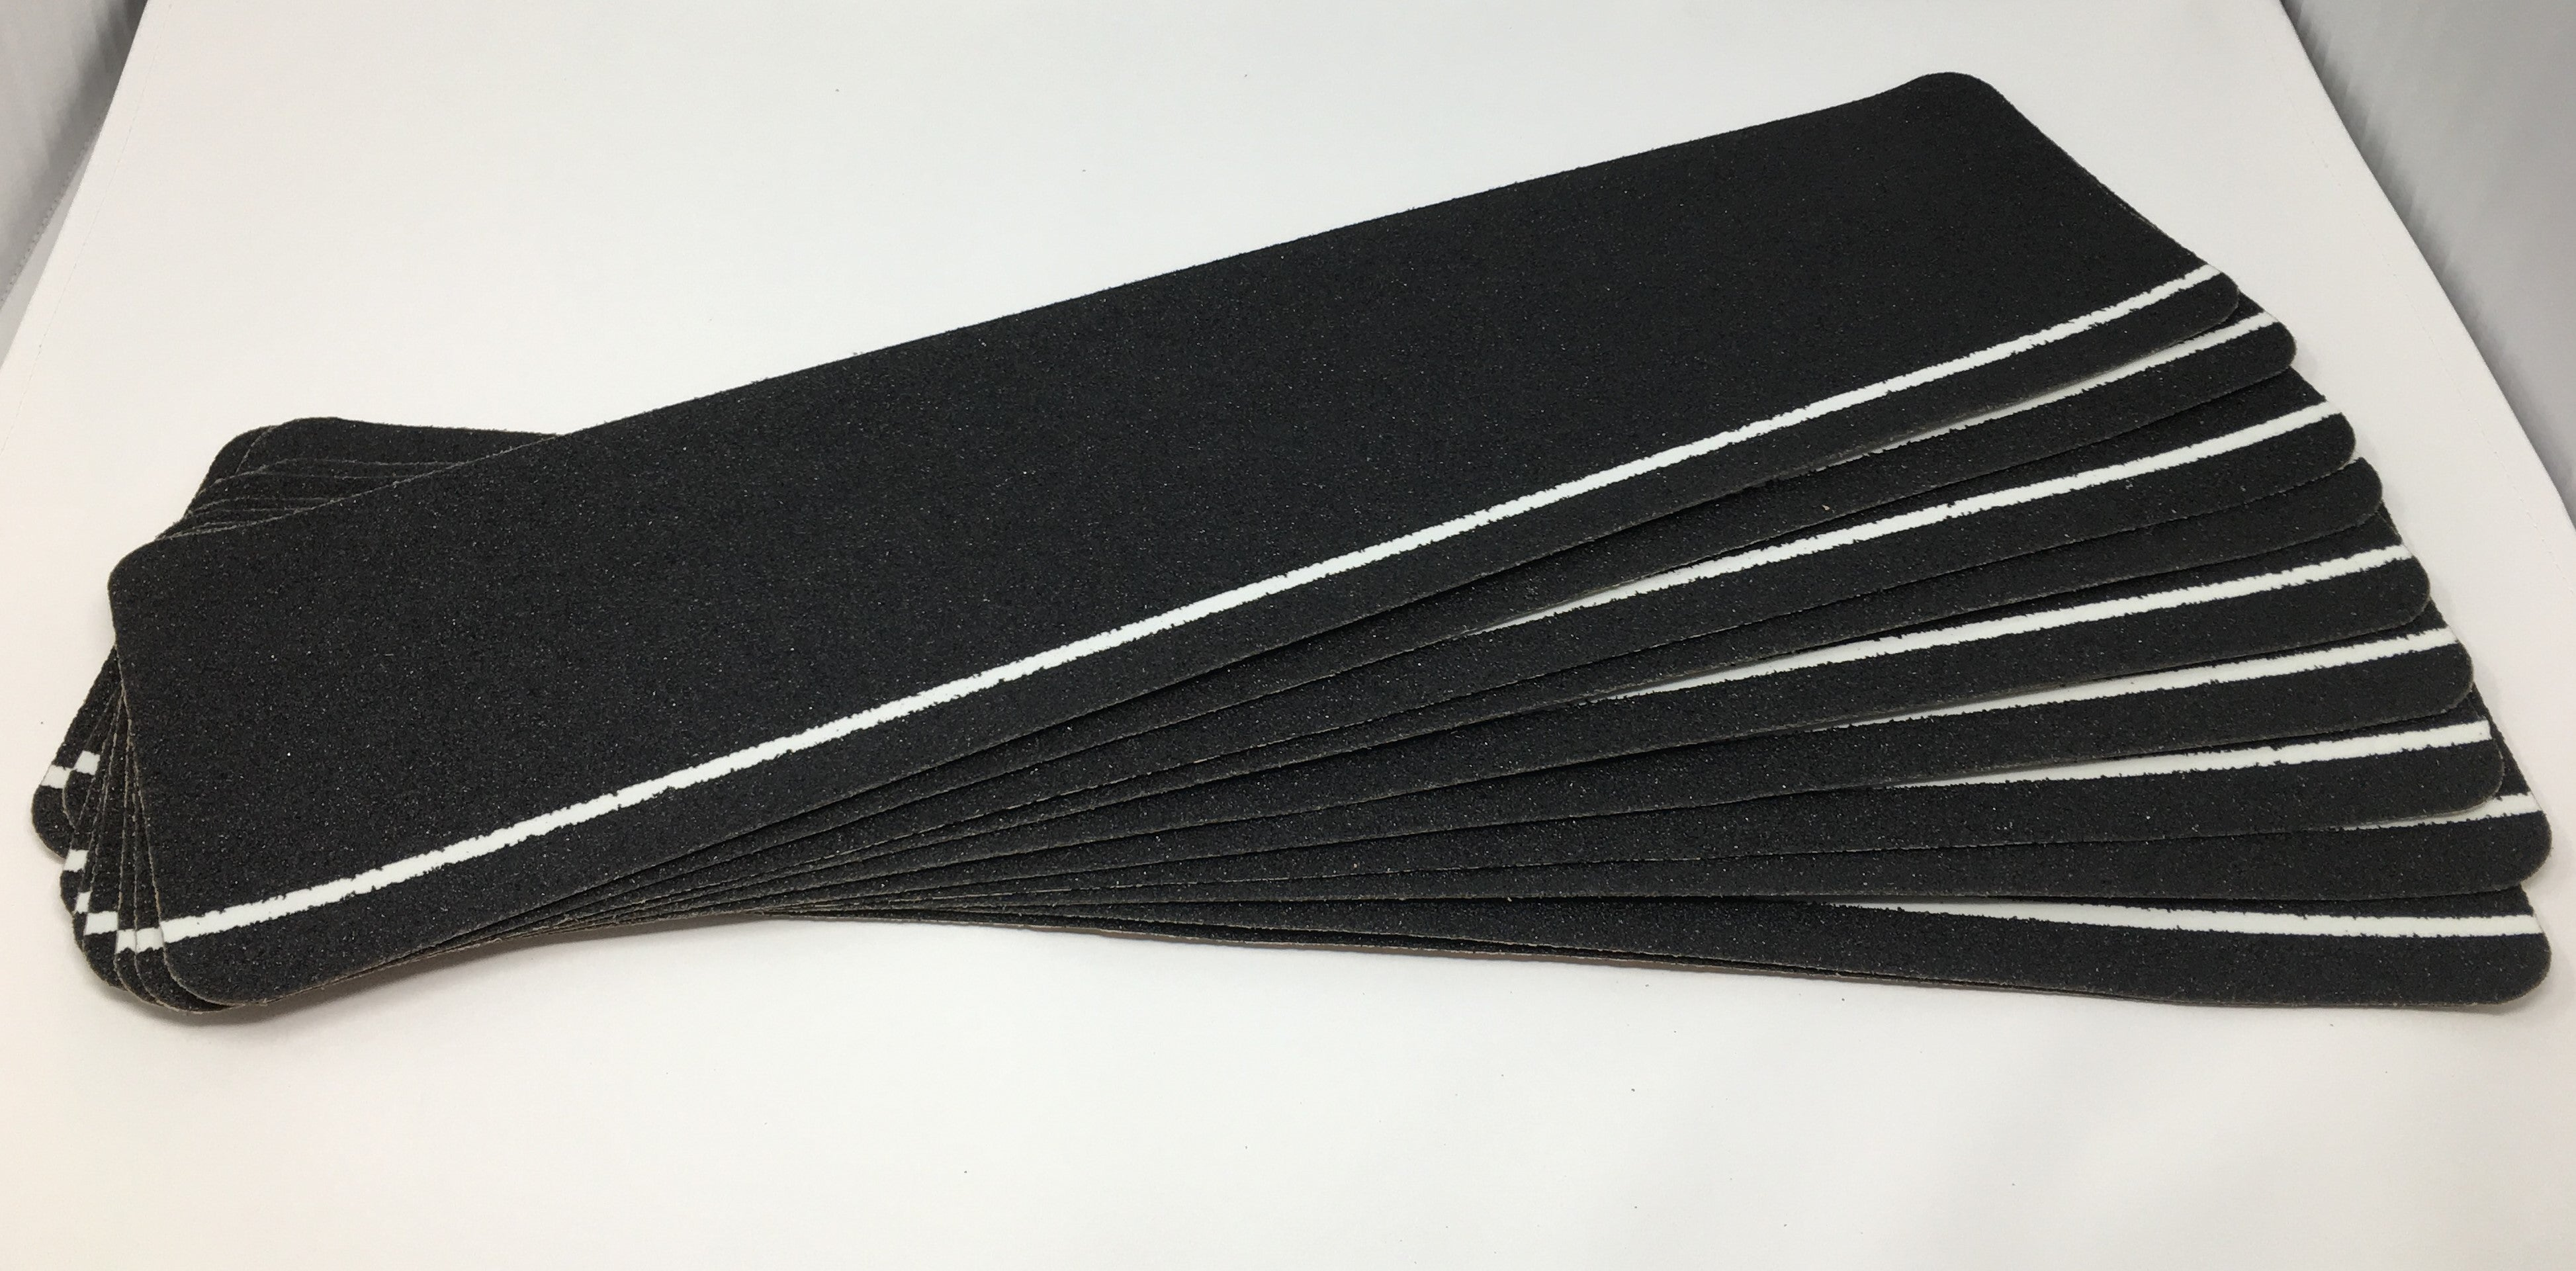 "6"" X 24"" Package of 50 Abrasive Non-Skid Stair Treads Black with Glow in the Dark Stripe"